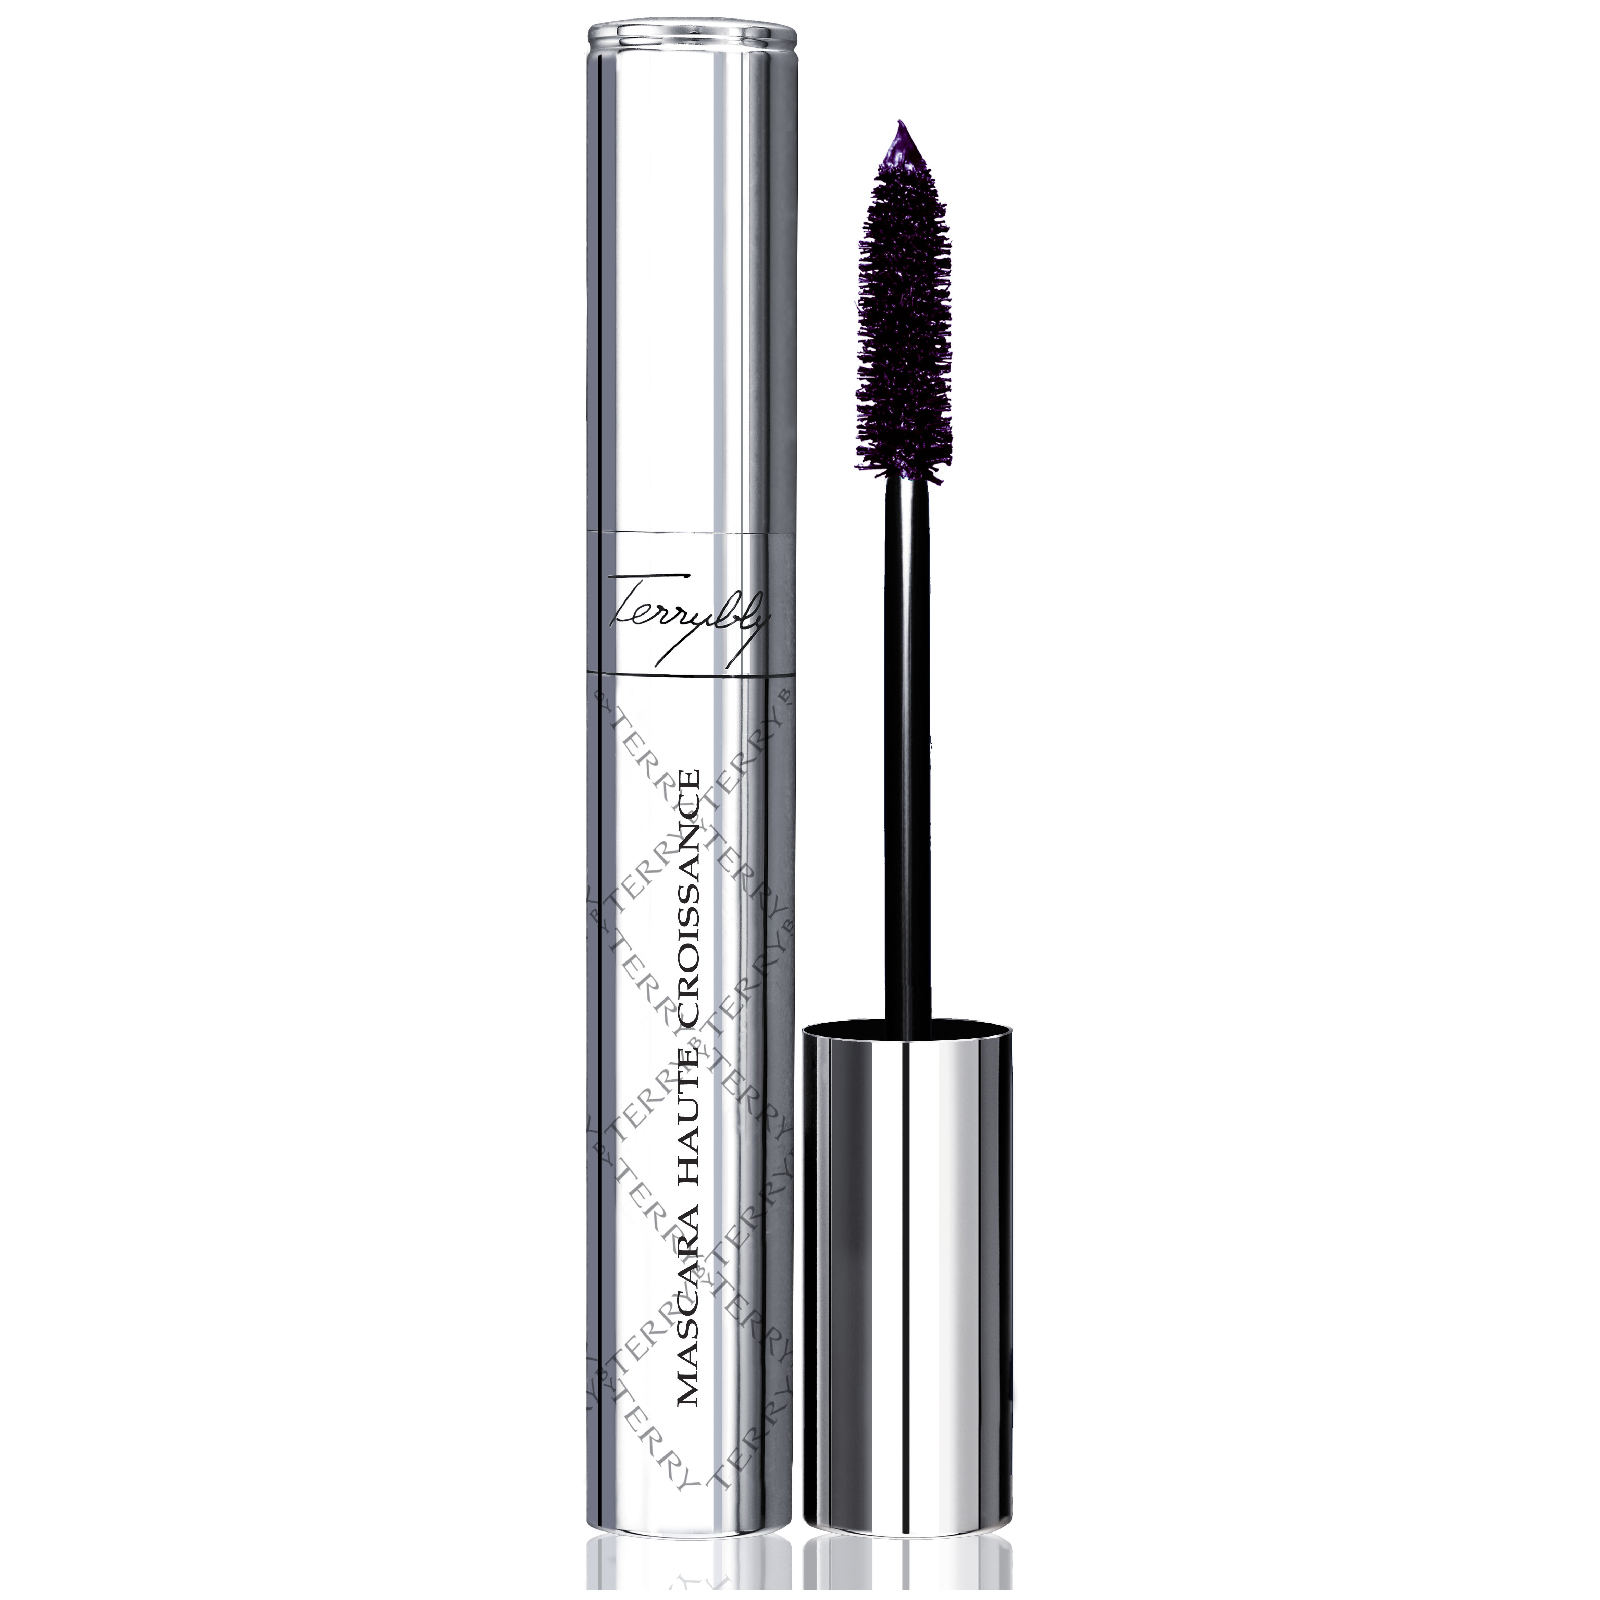 By Terry Terrybly Mascara 8ml (Various Shades) - 4. Purple Success